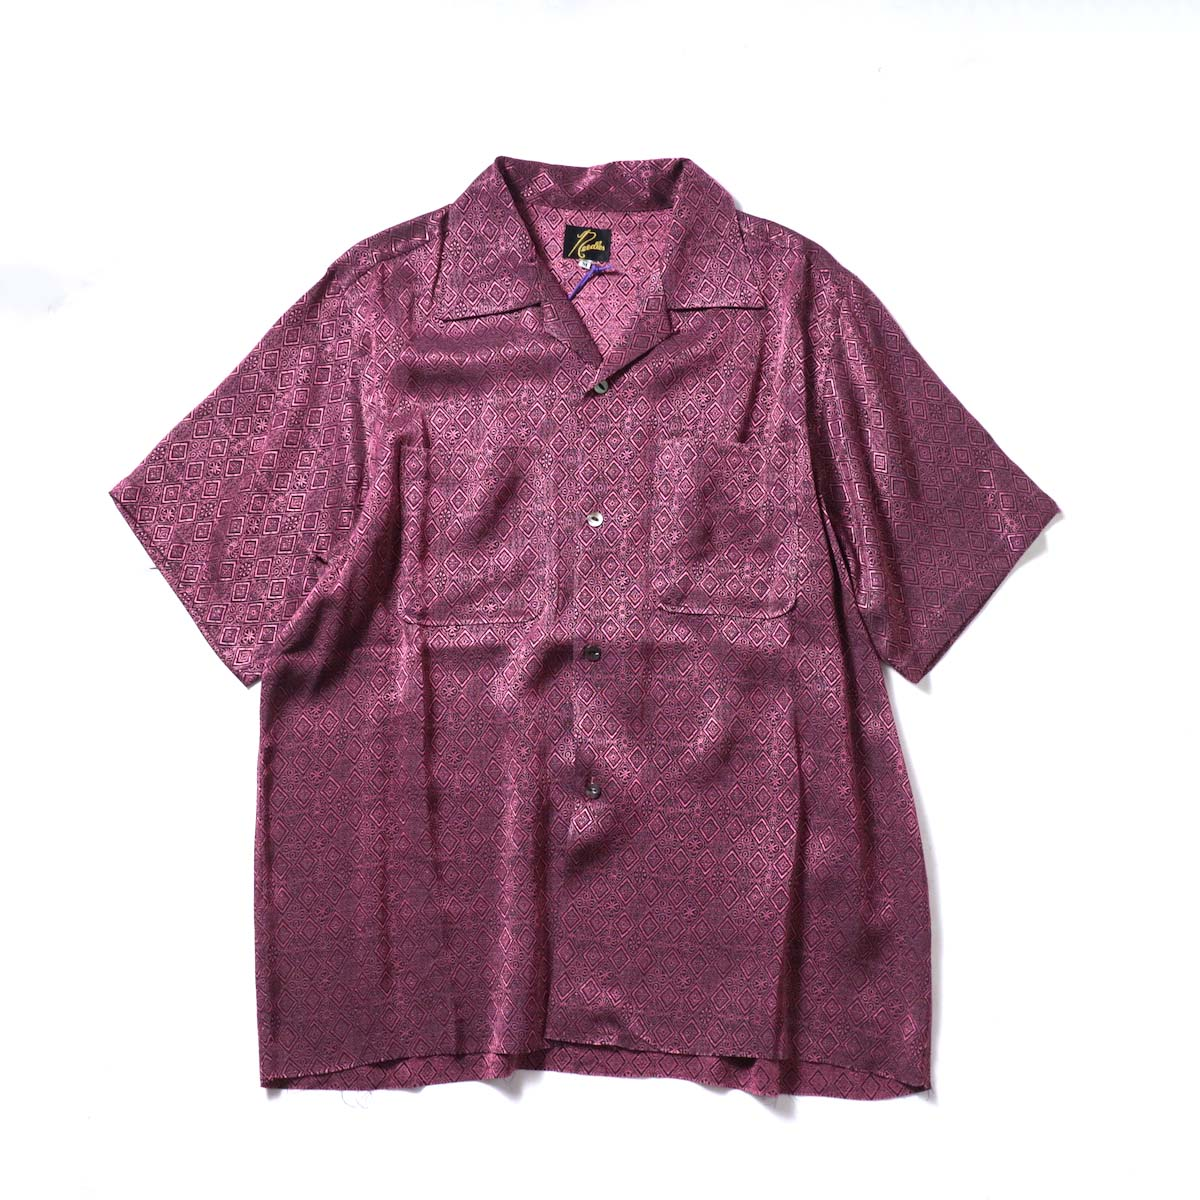 Needles / C.O.B. S/S One-Up Shirt -Fine Pattern Jq. (Diamond)